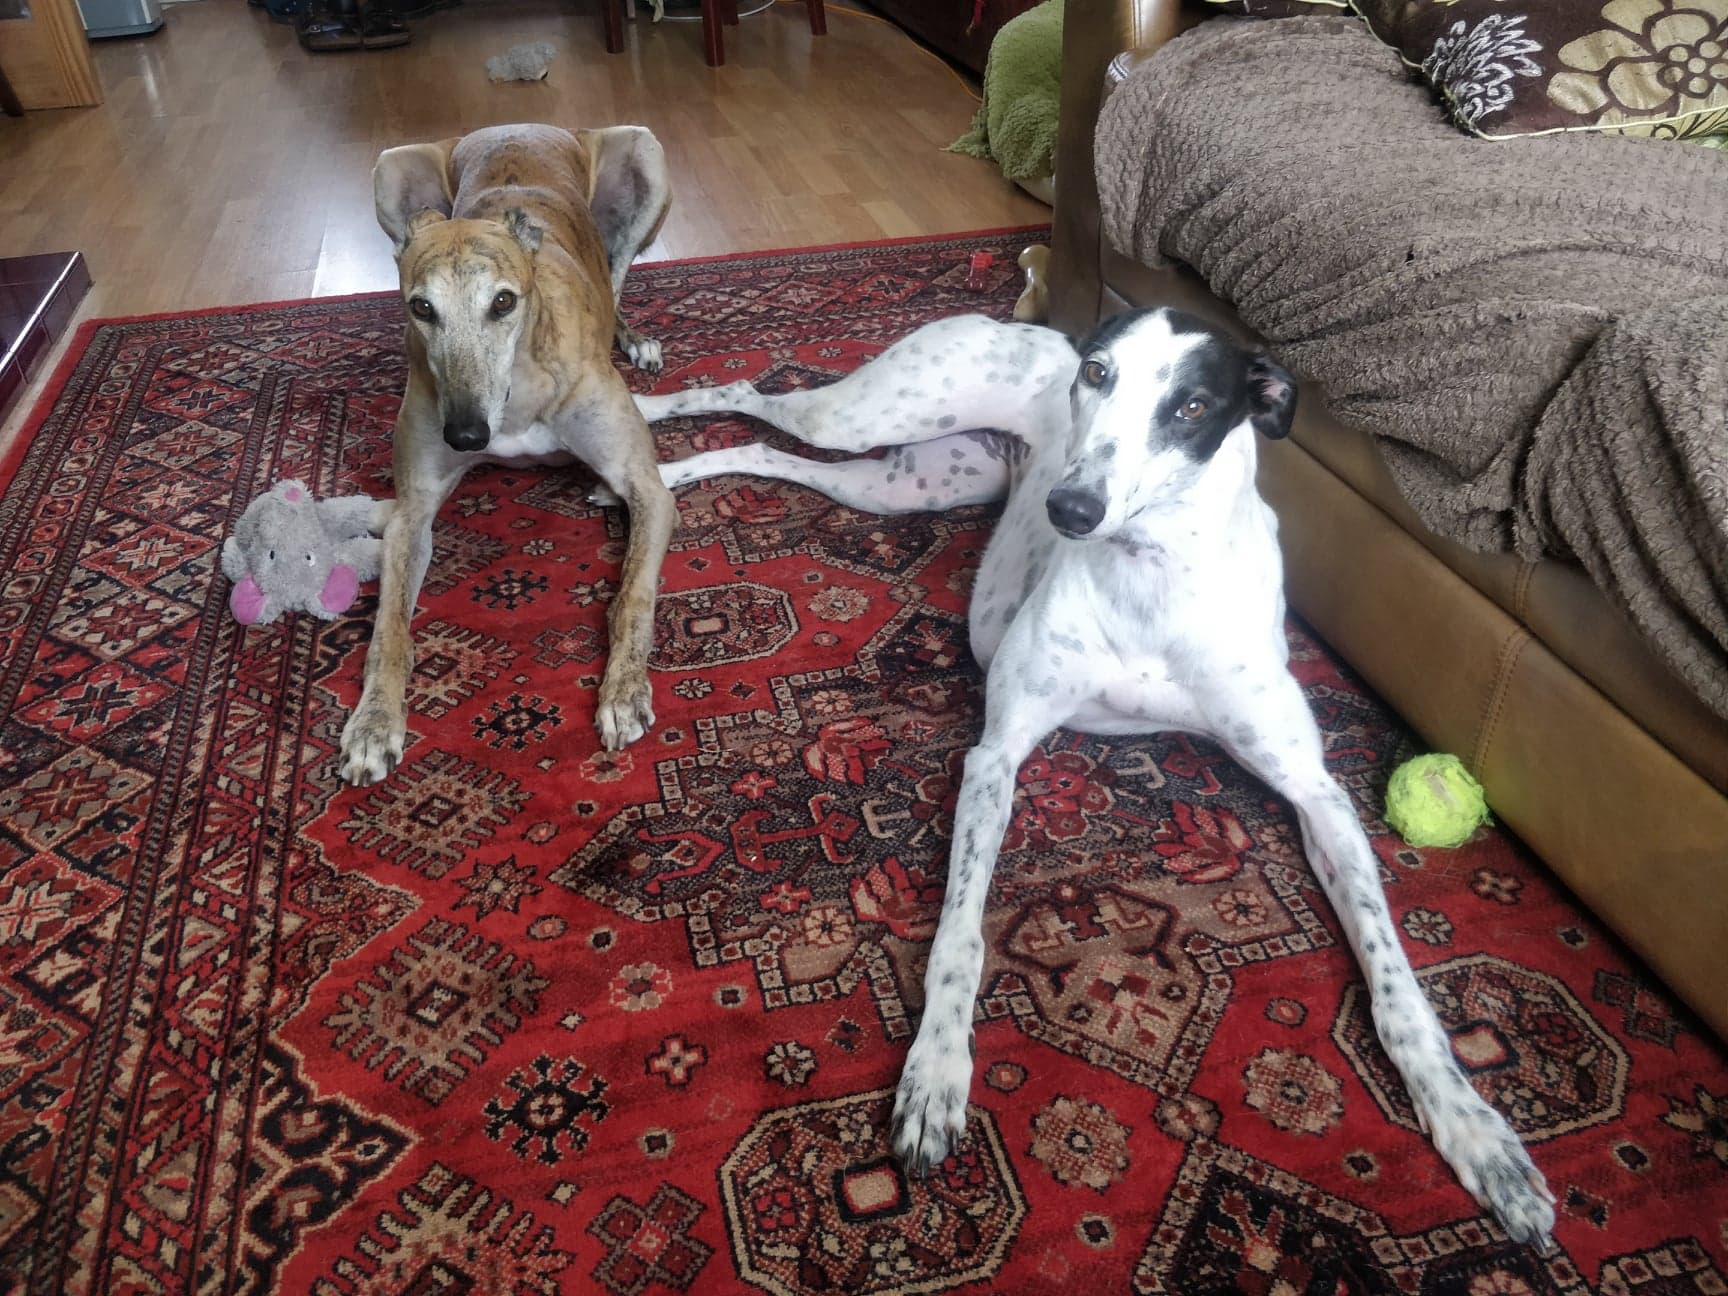 Greyhounds doing dog training and learning to settle on command